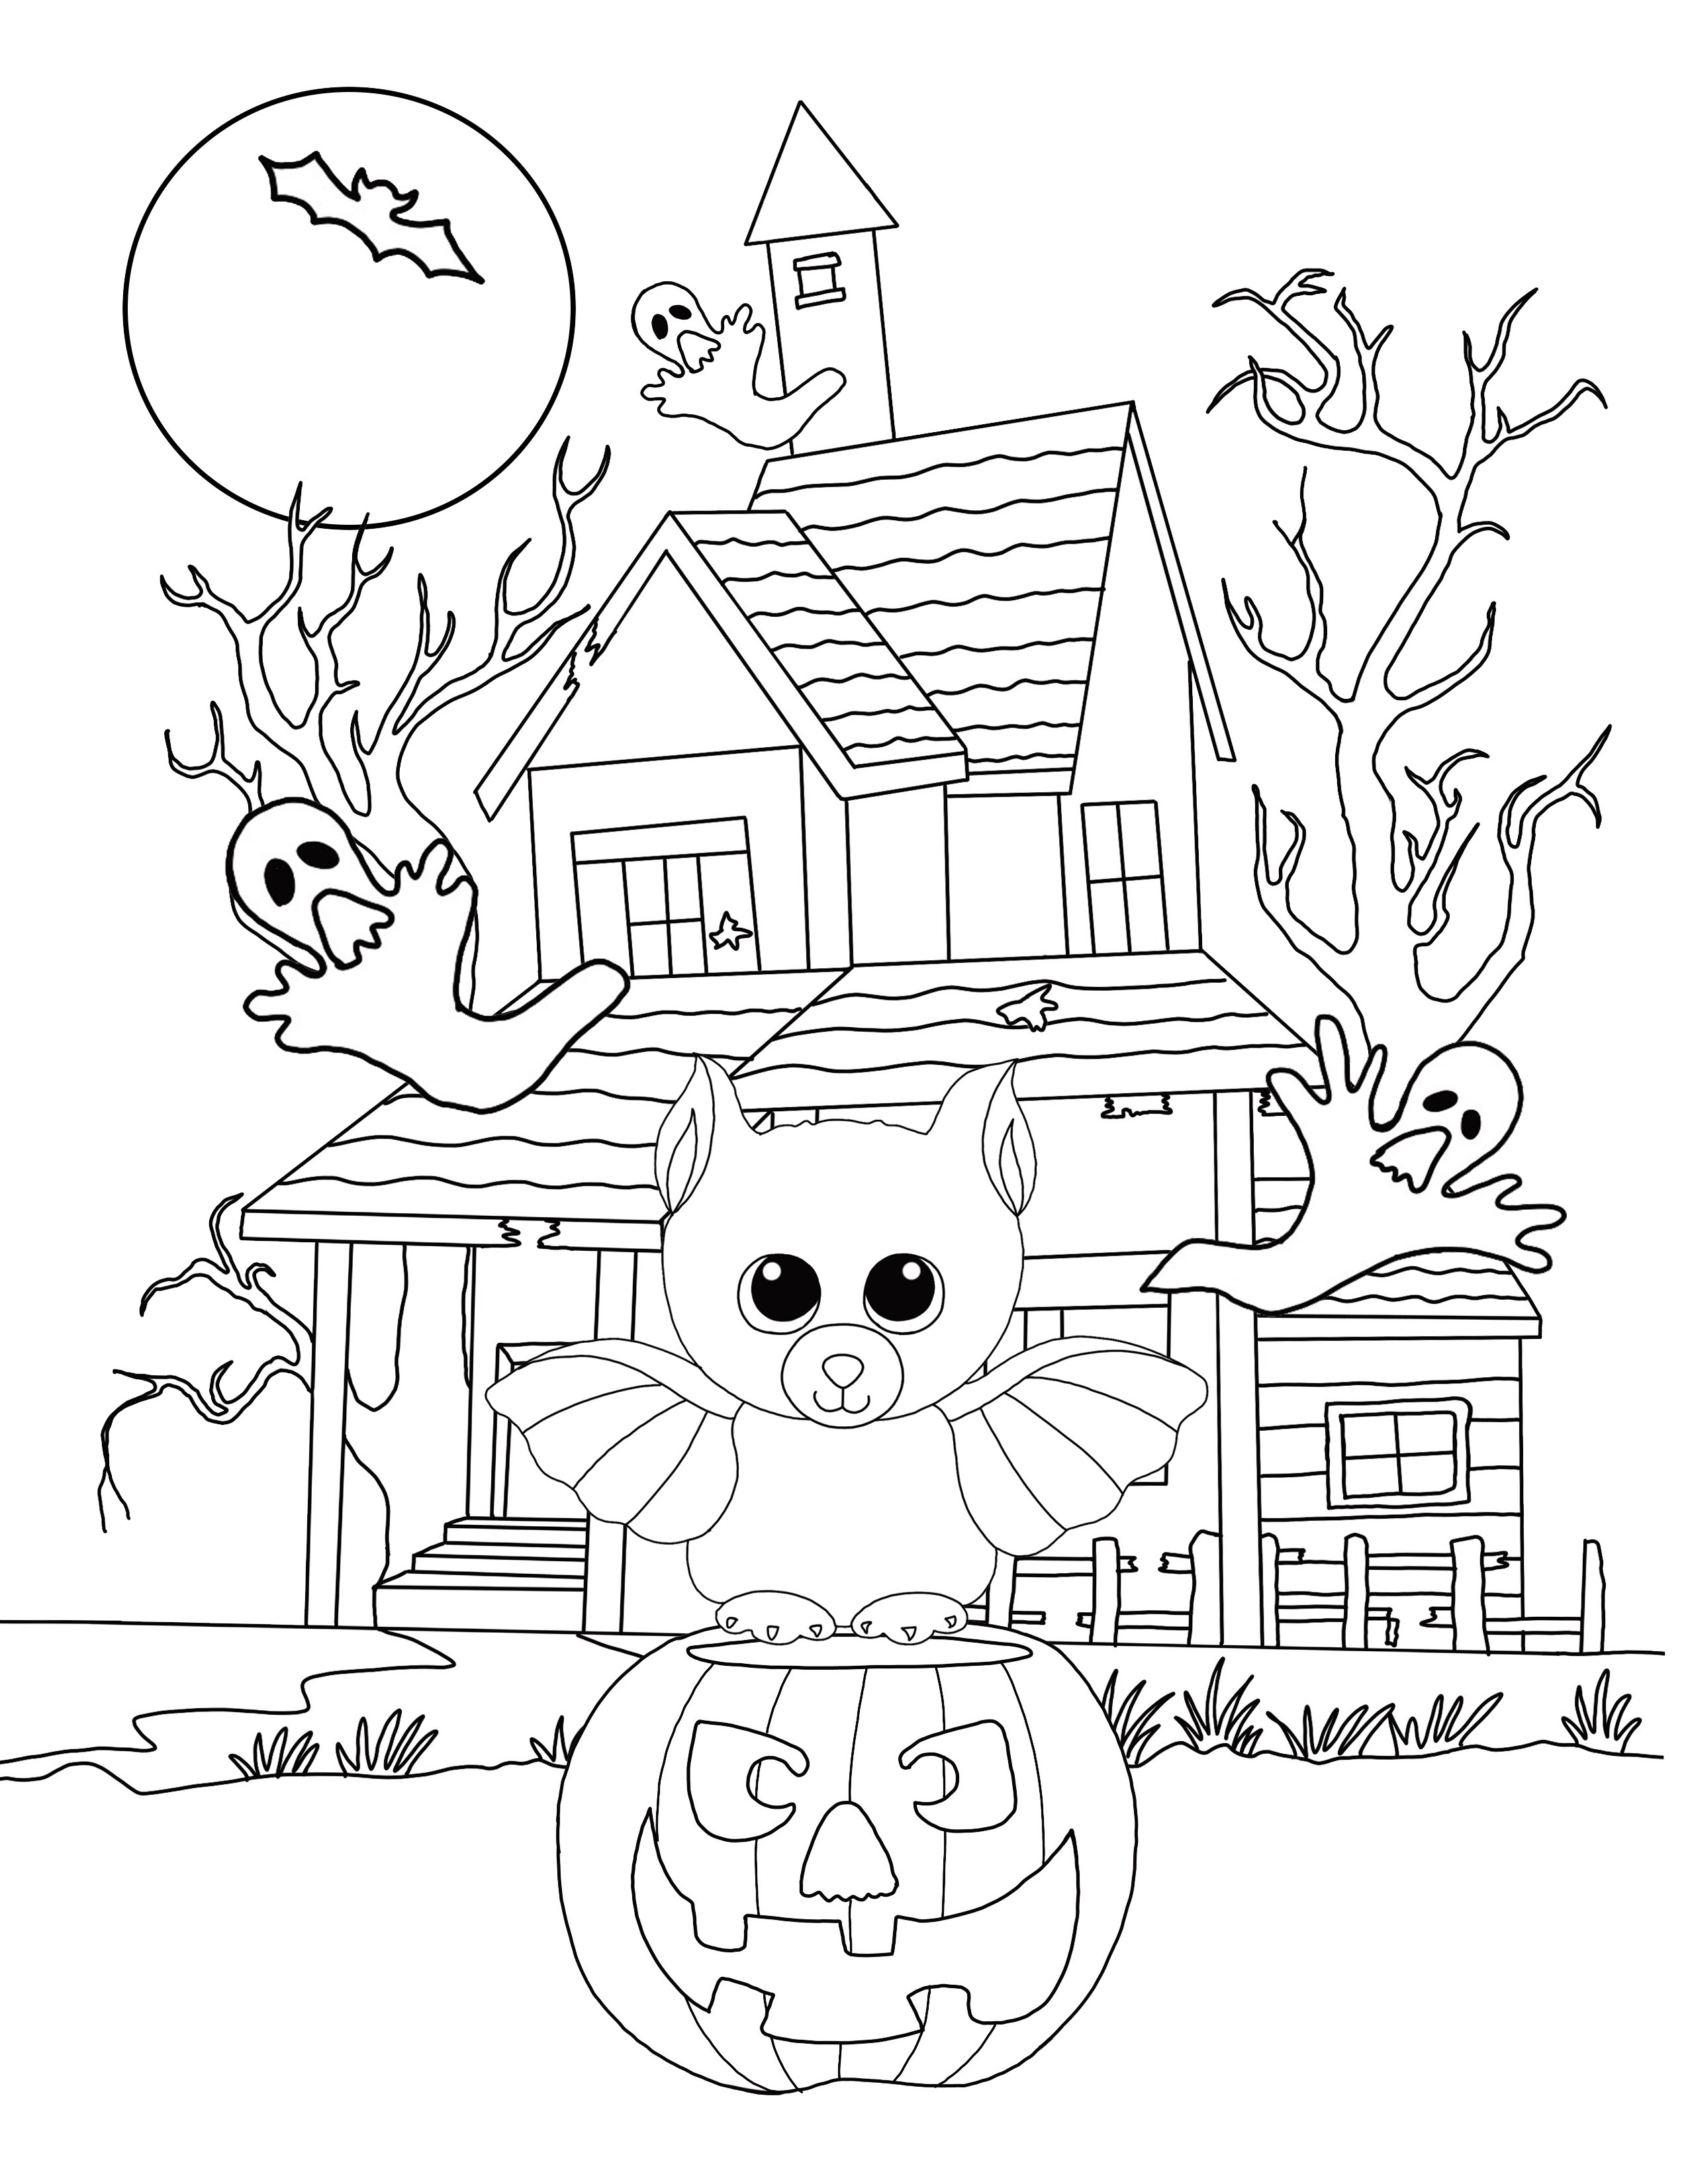 Free Beanie Boo Coloring Pages Download & Print: Cats ...